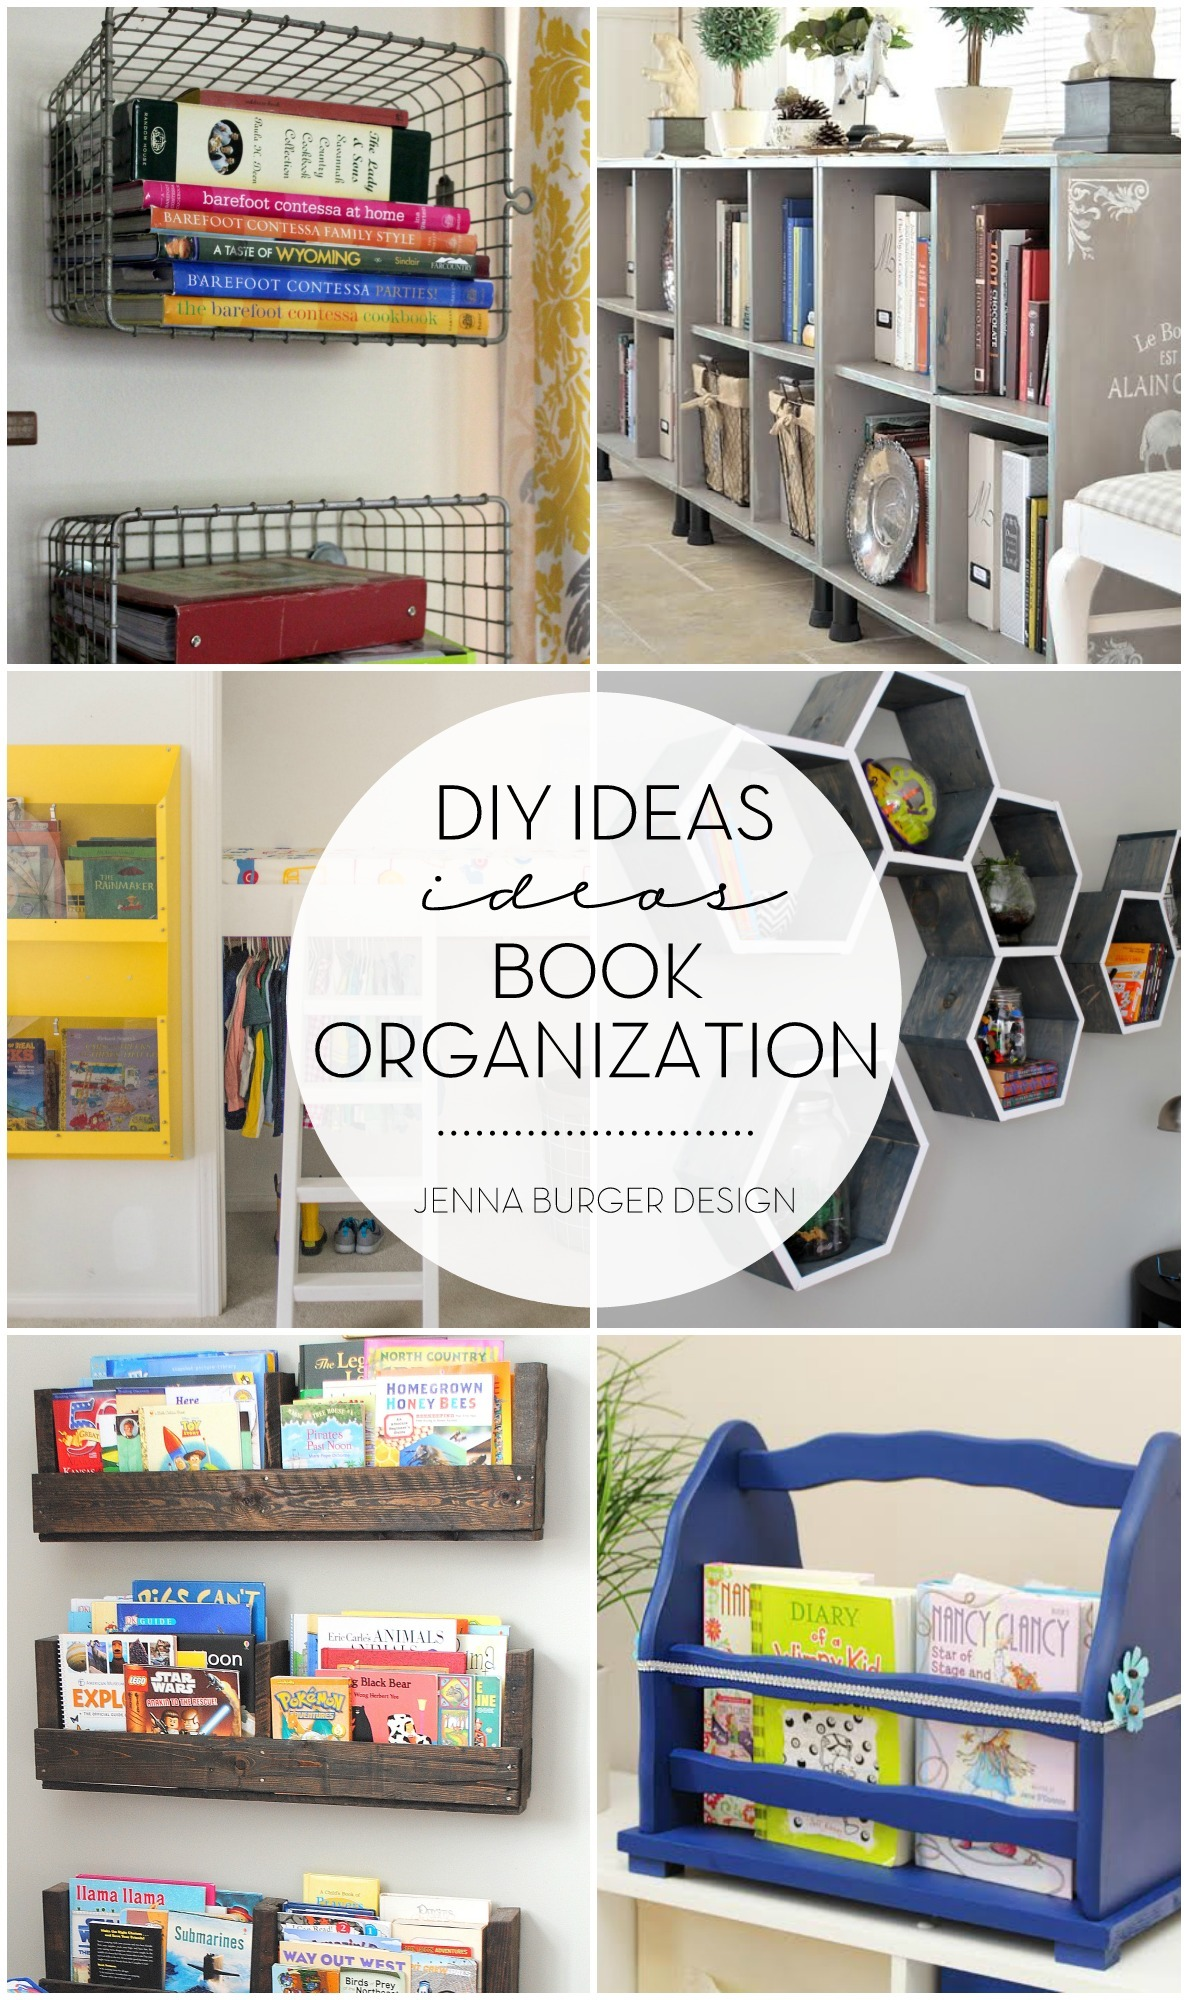 Diy ideas for book organization jenna burger 5 diy ideas for book organization ditch the idea that books are only for the solutioingenieria